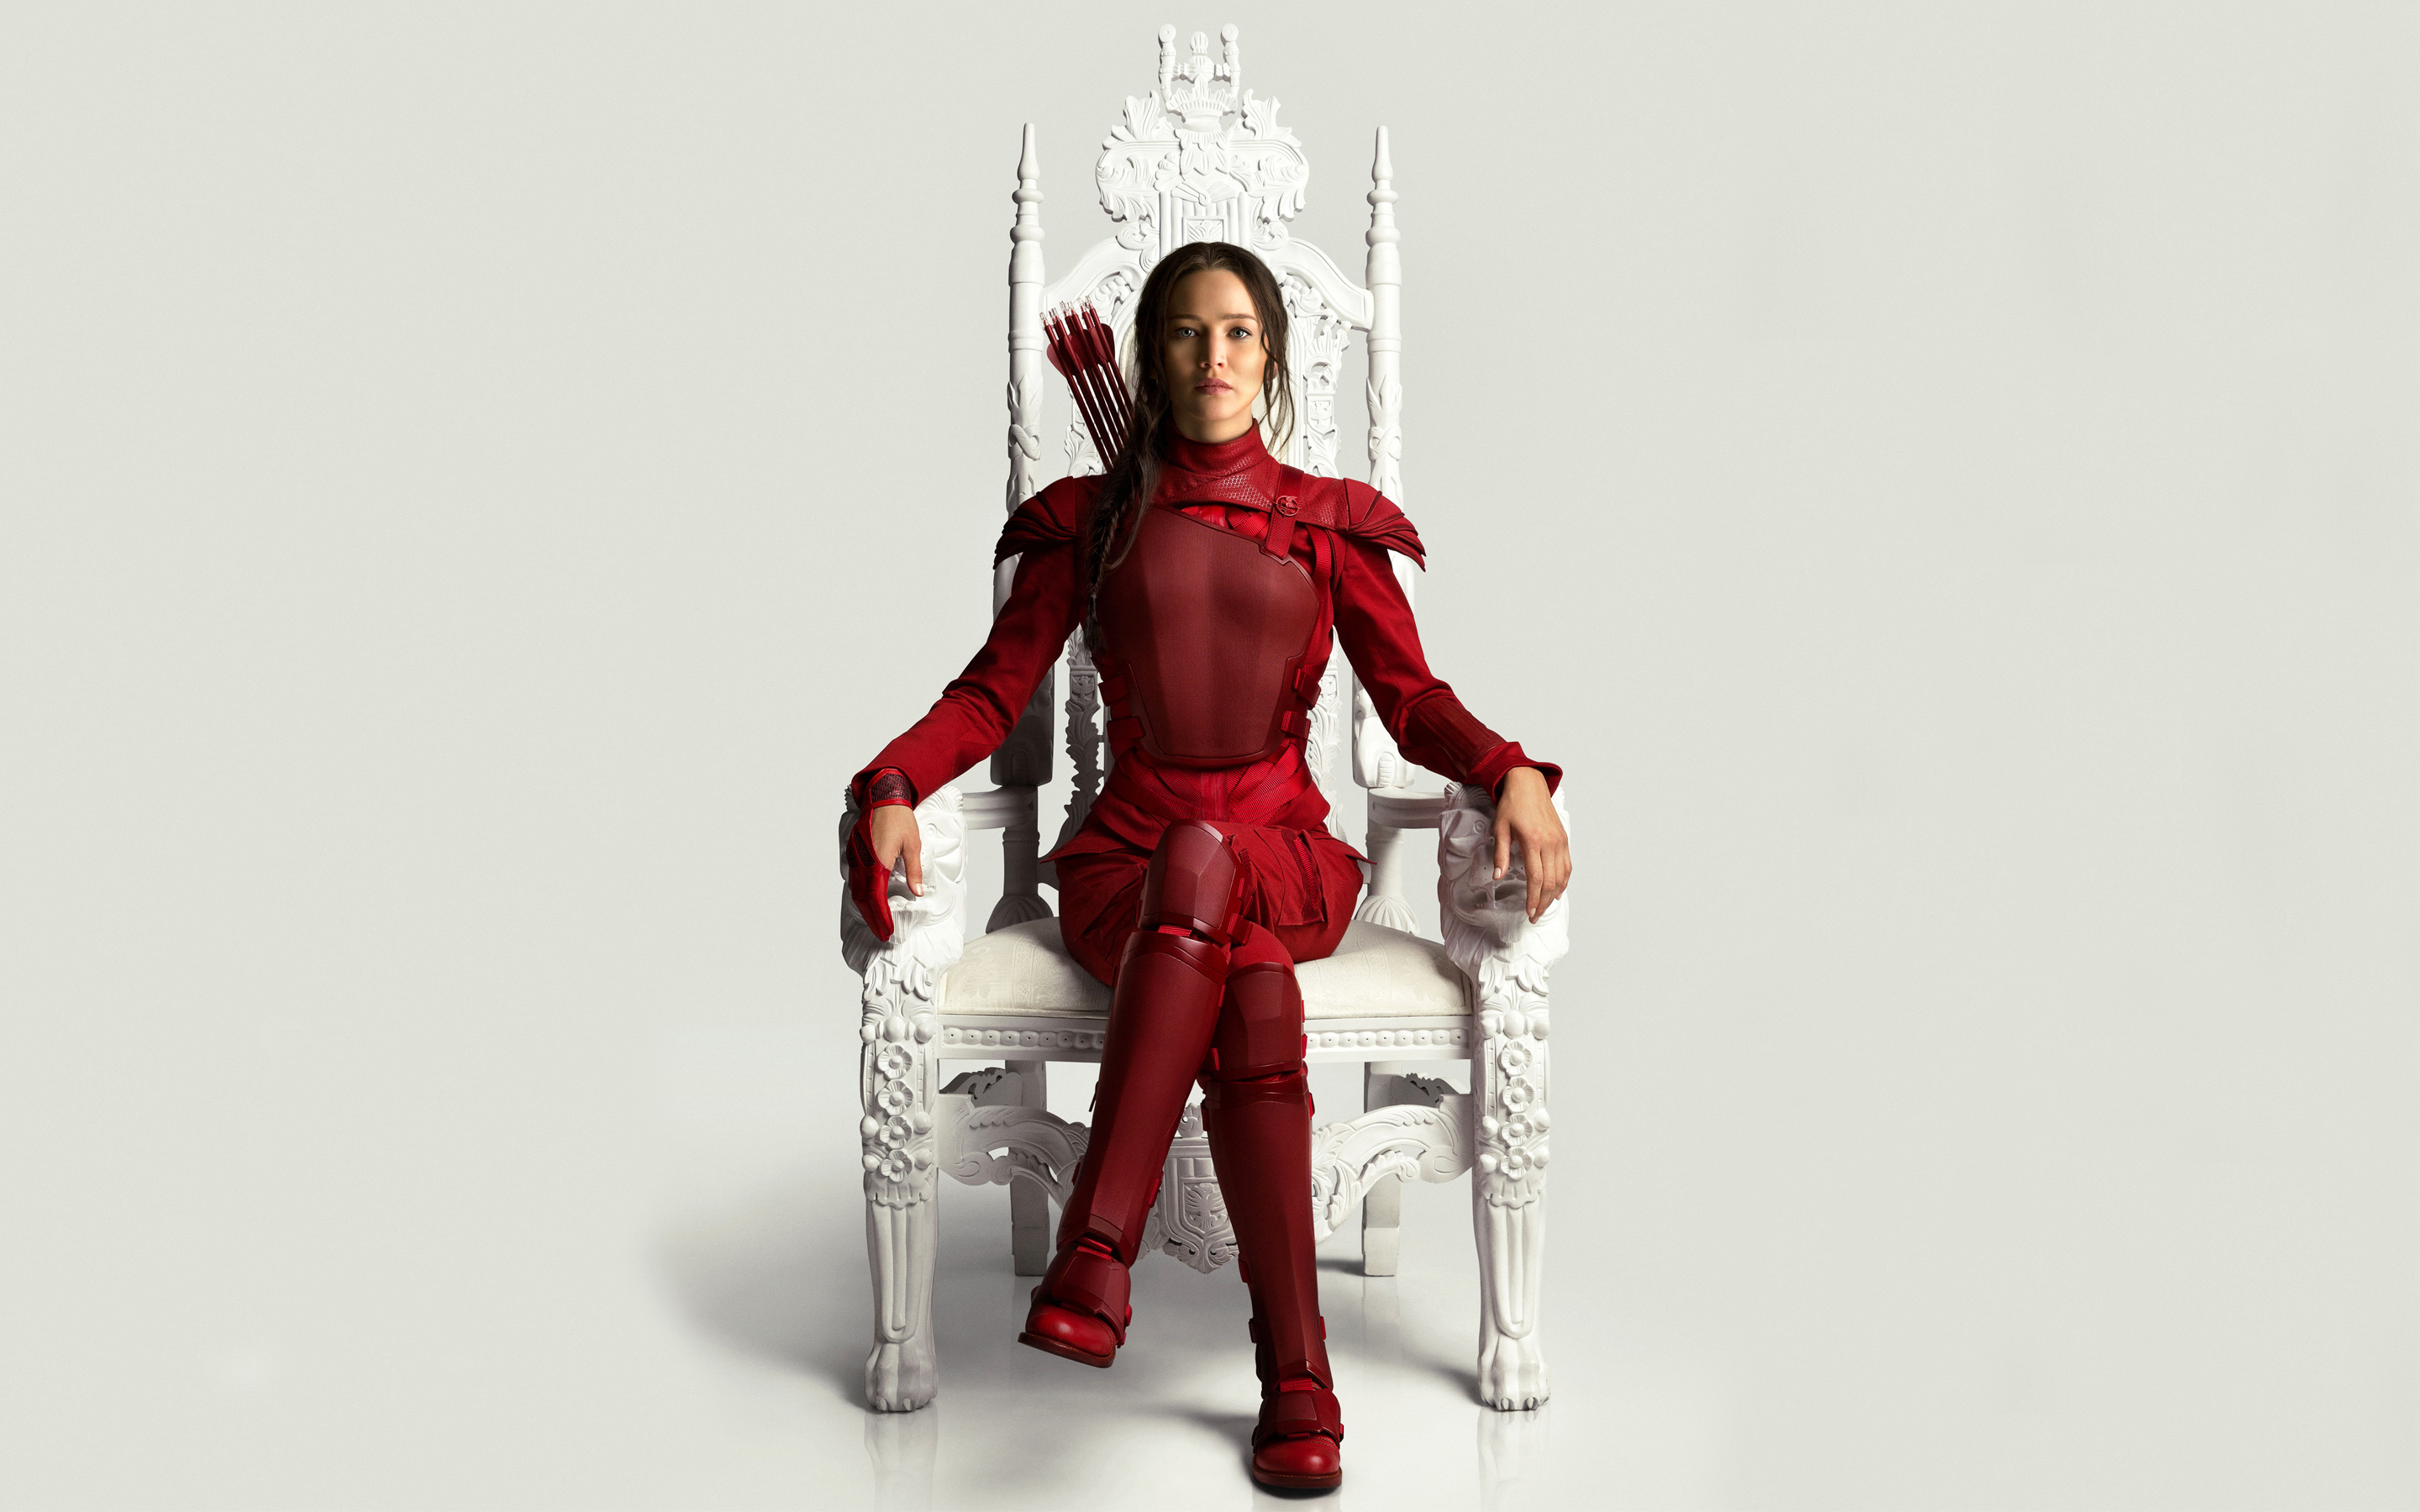 HD Wallpapers The Hunger Games Mockingjay Part 2